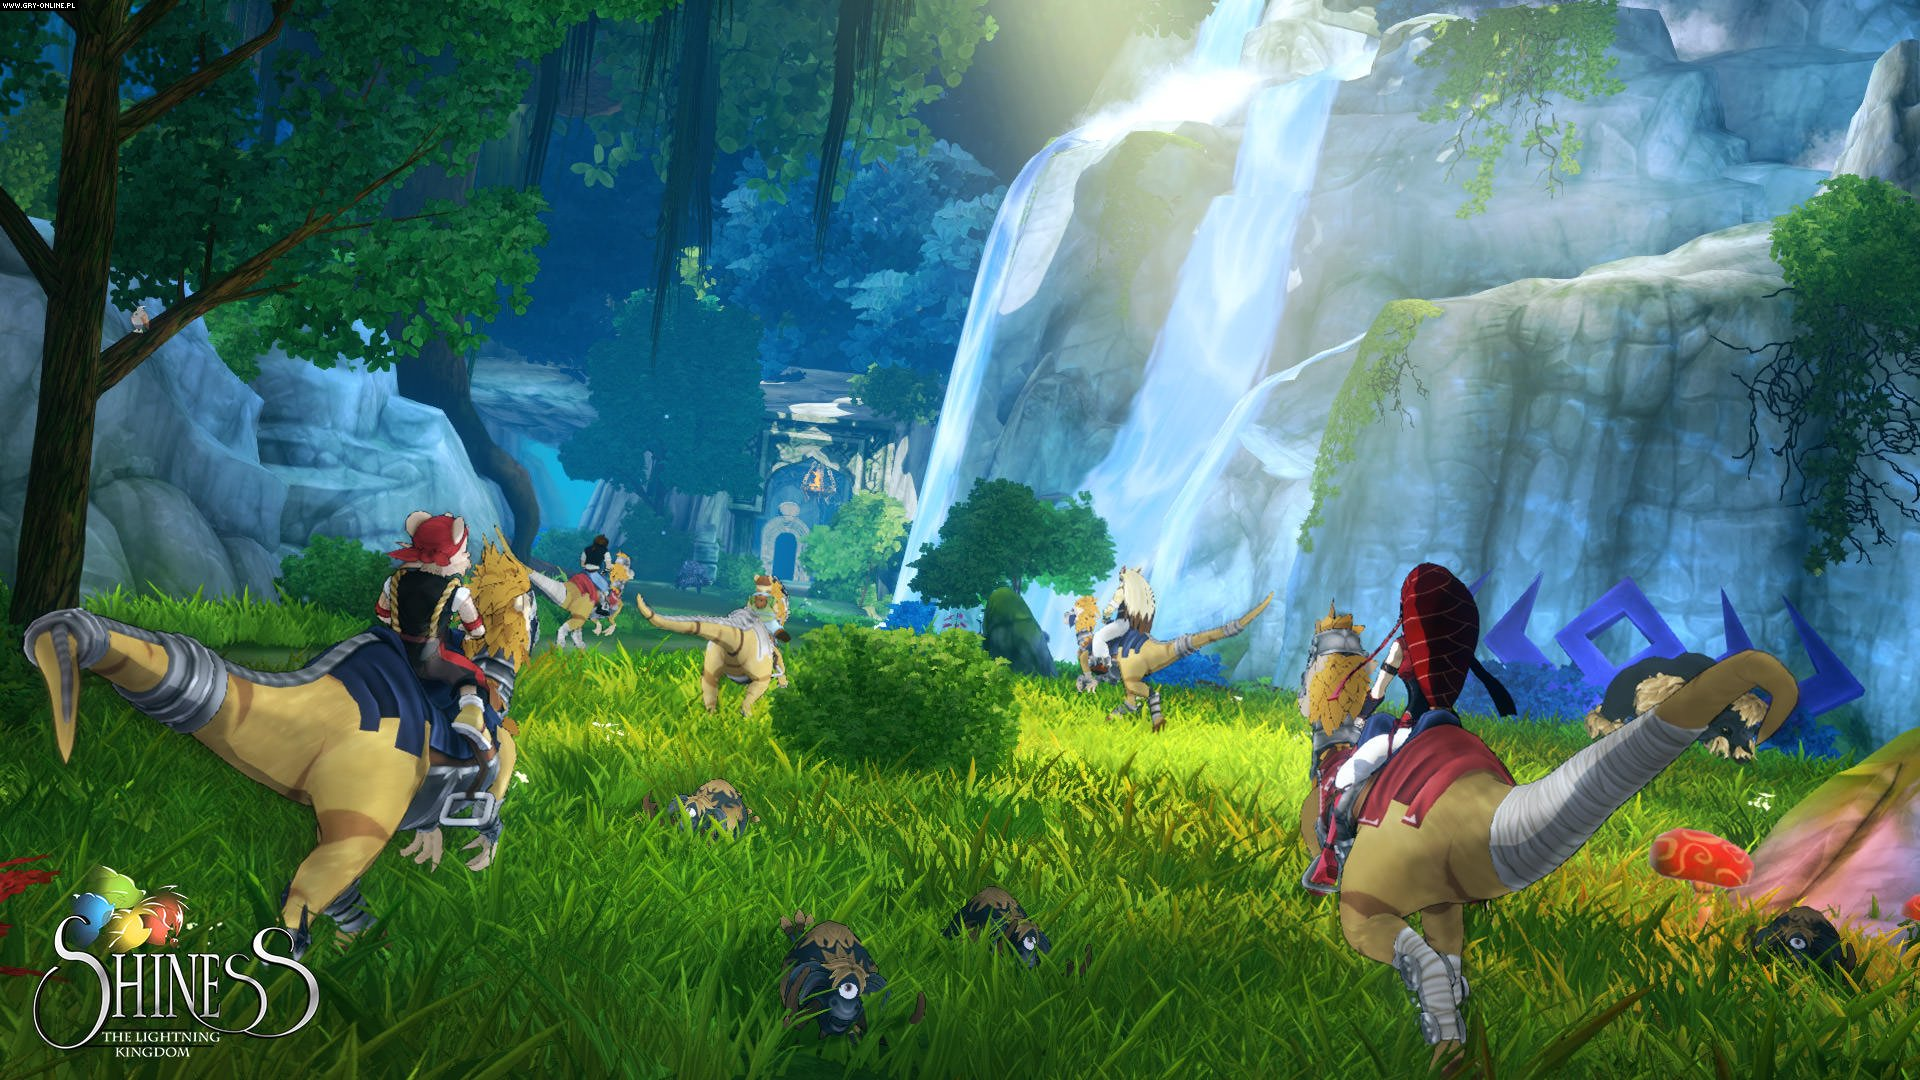 Shiness: The Lightning Kingdom XONE, PS4, PC, WiiU Games Image 3/12, Enigami, Focus Home Interactive